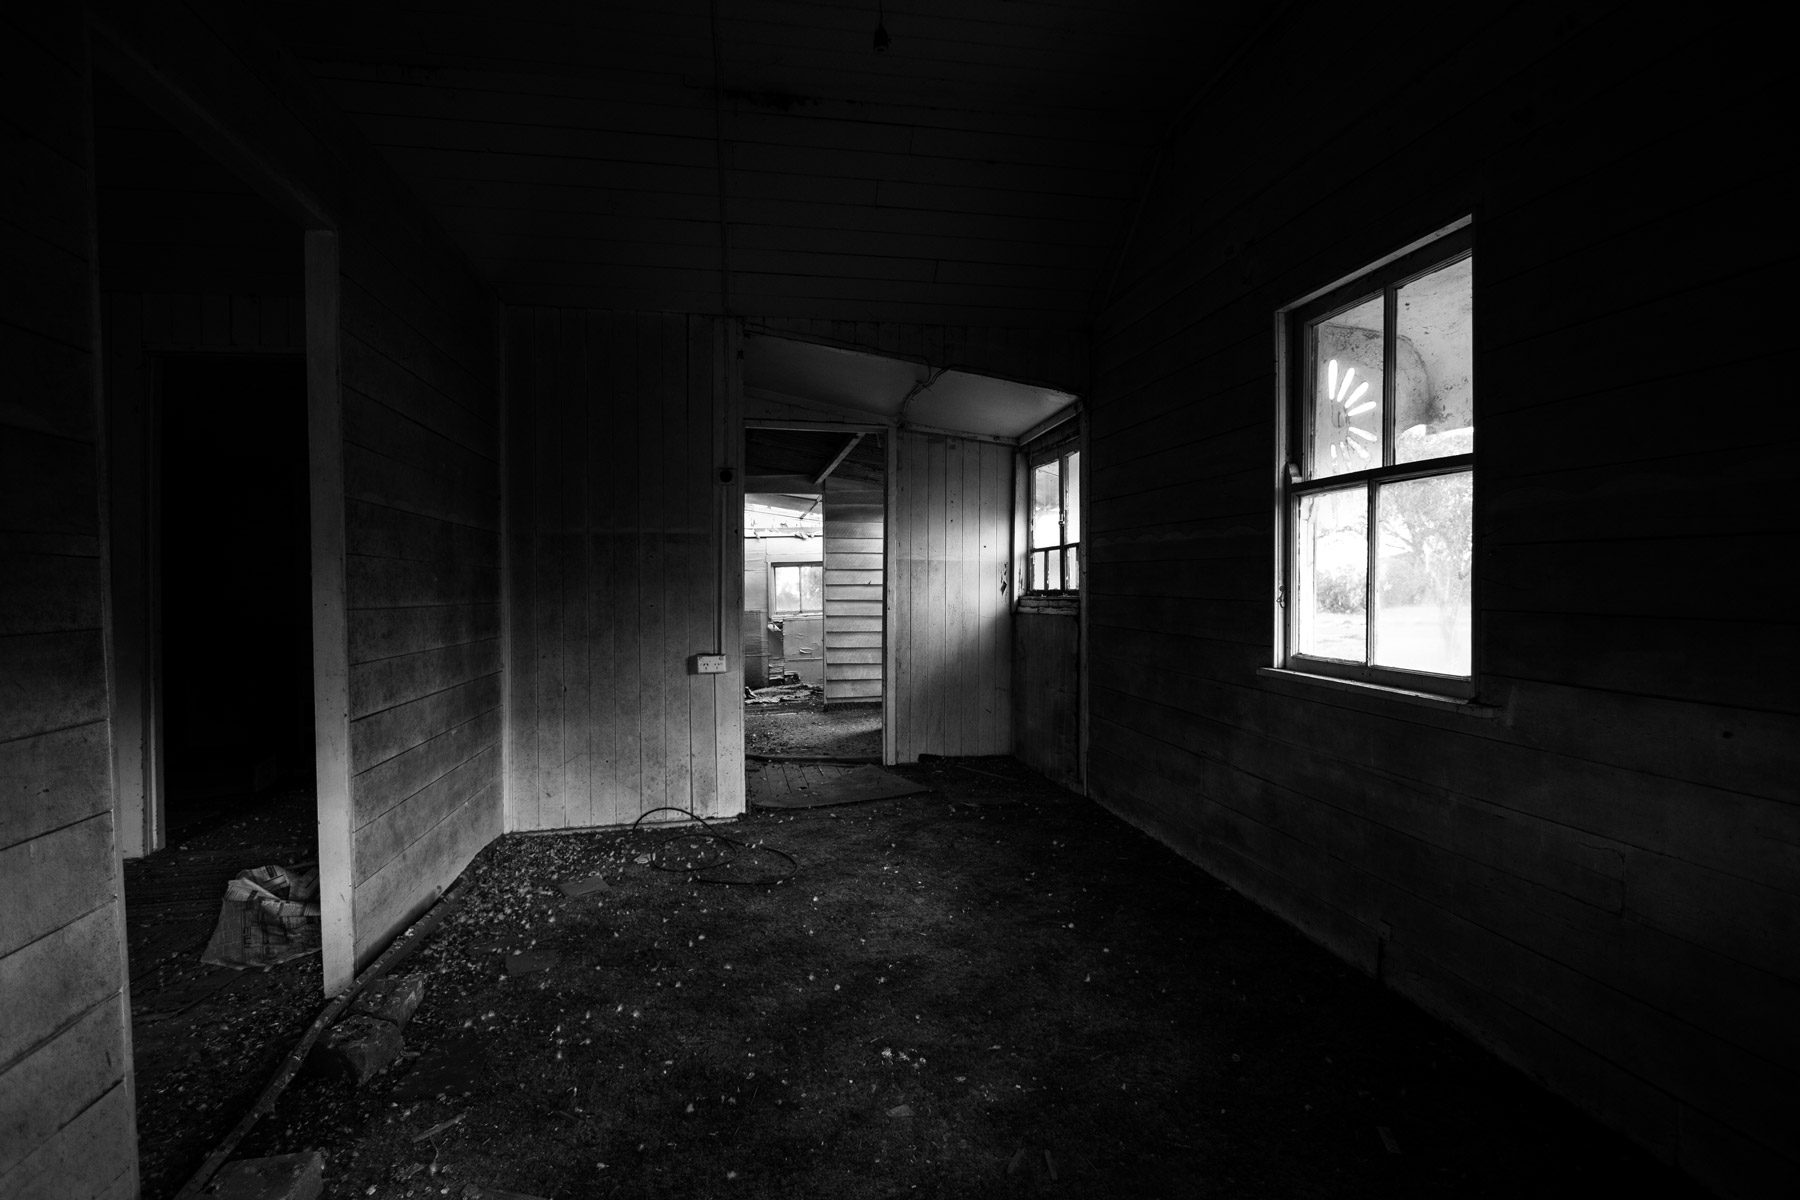 A room inside an abandoned house in Acland, Australia